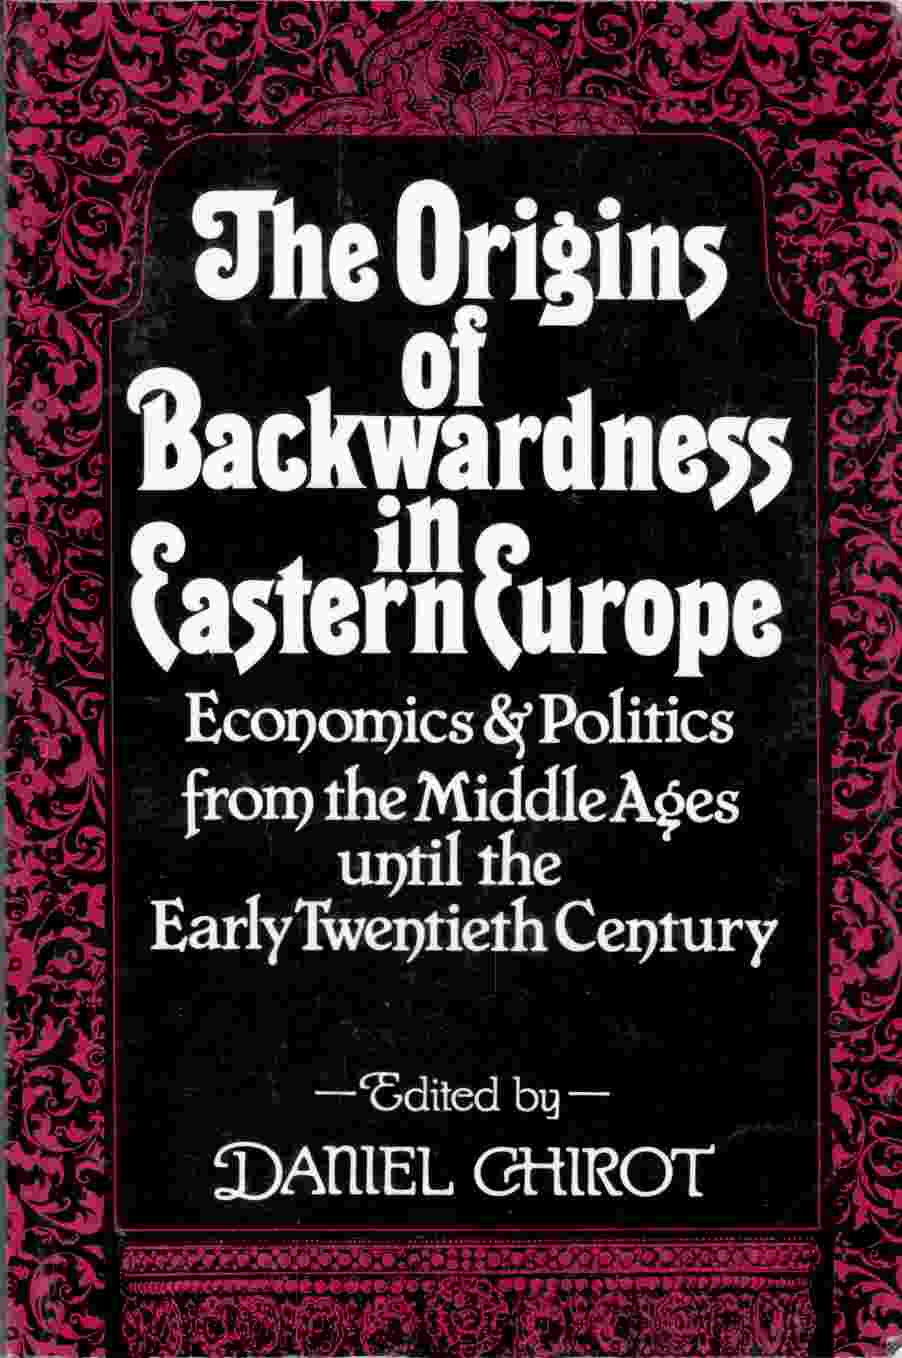 Image for The Origins of Backwardness in Eastern Europe Economics and Politics from the Middle Ages Until the Early Twentieth Century